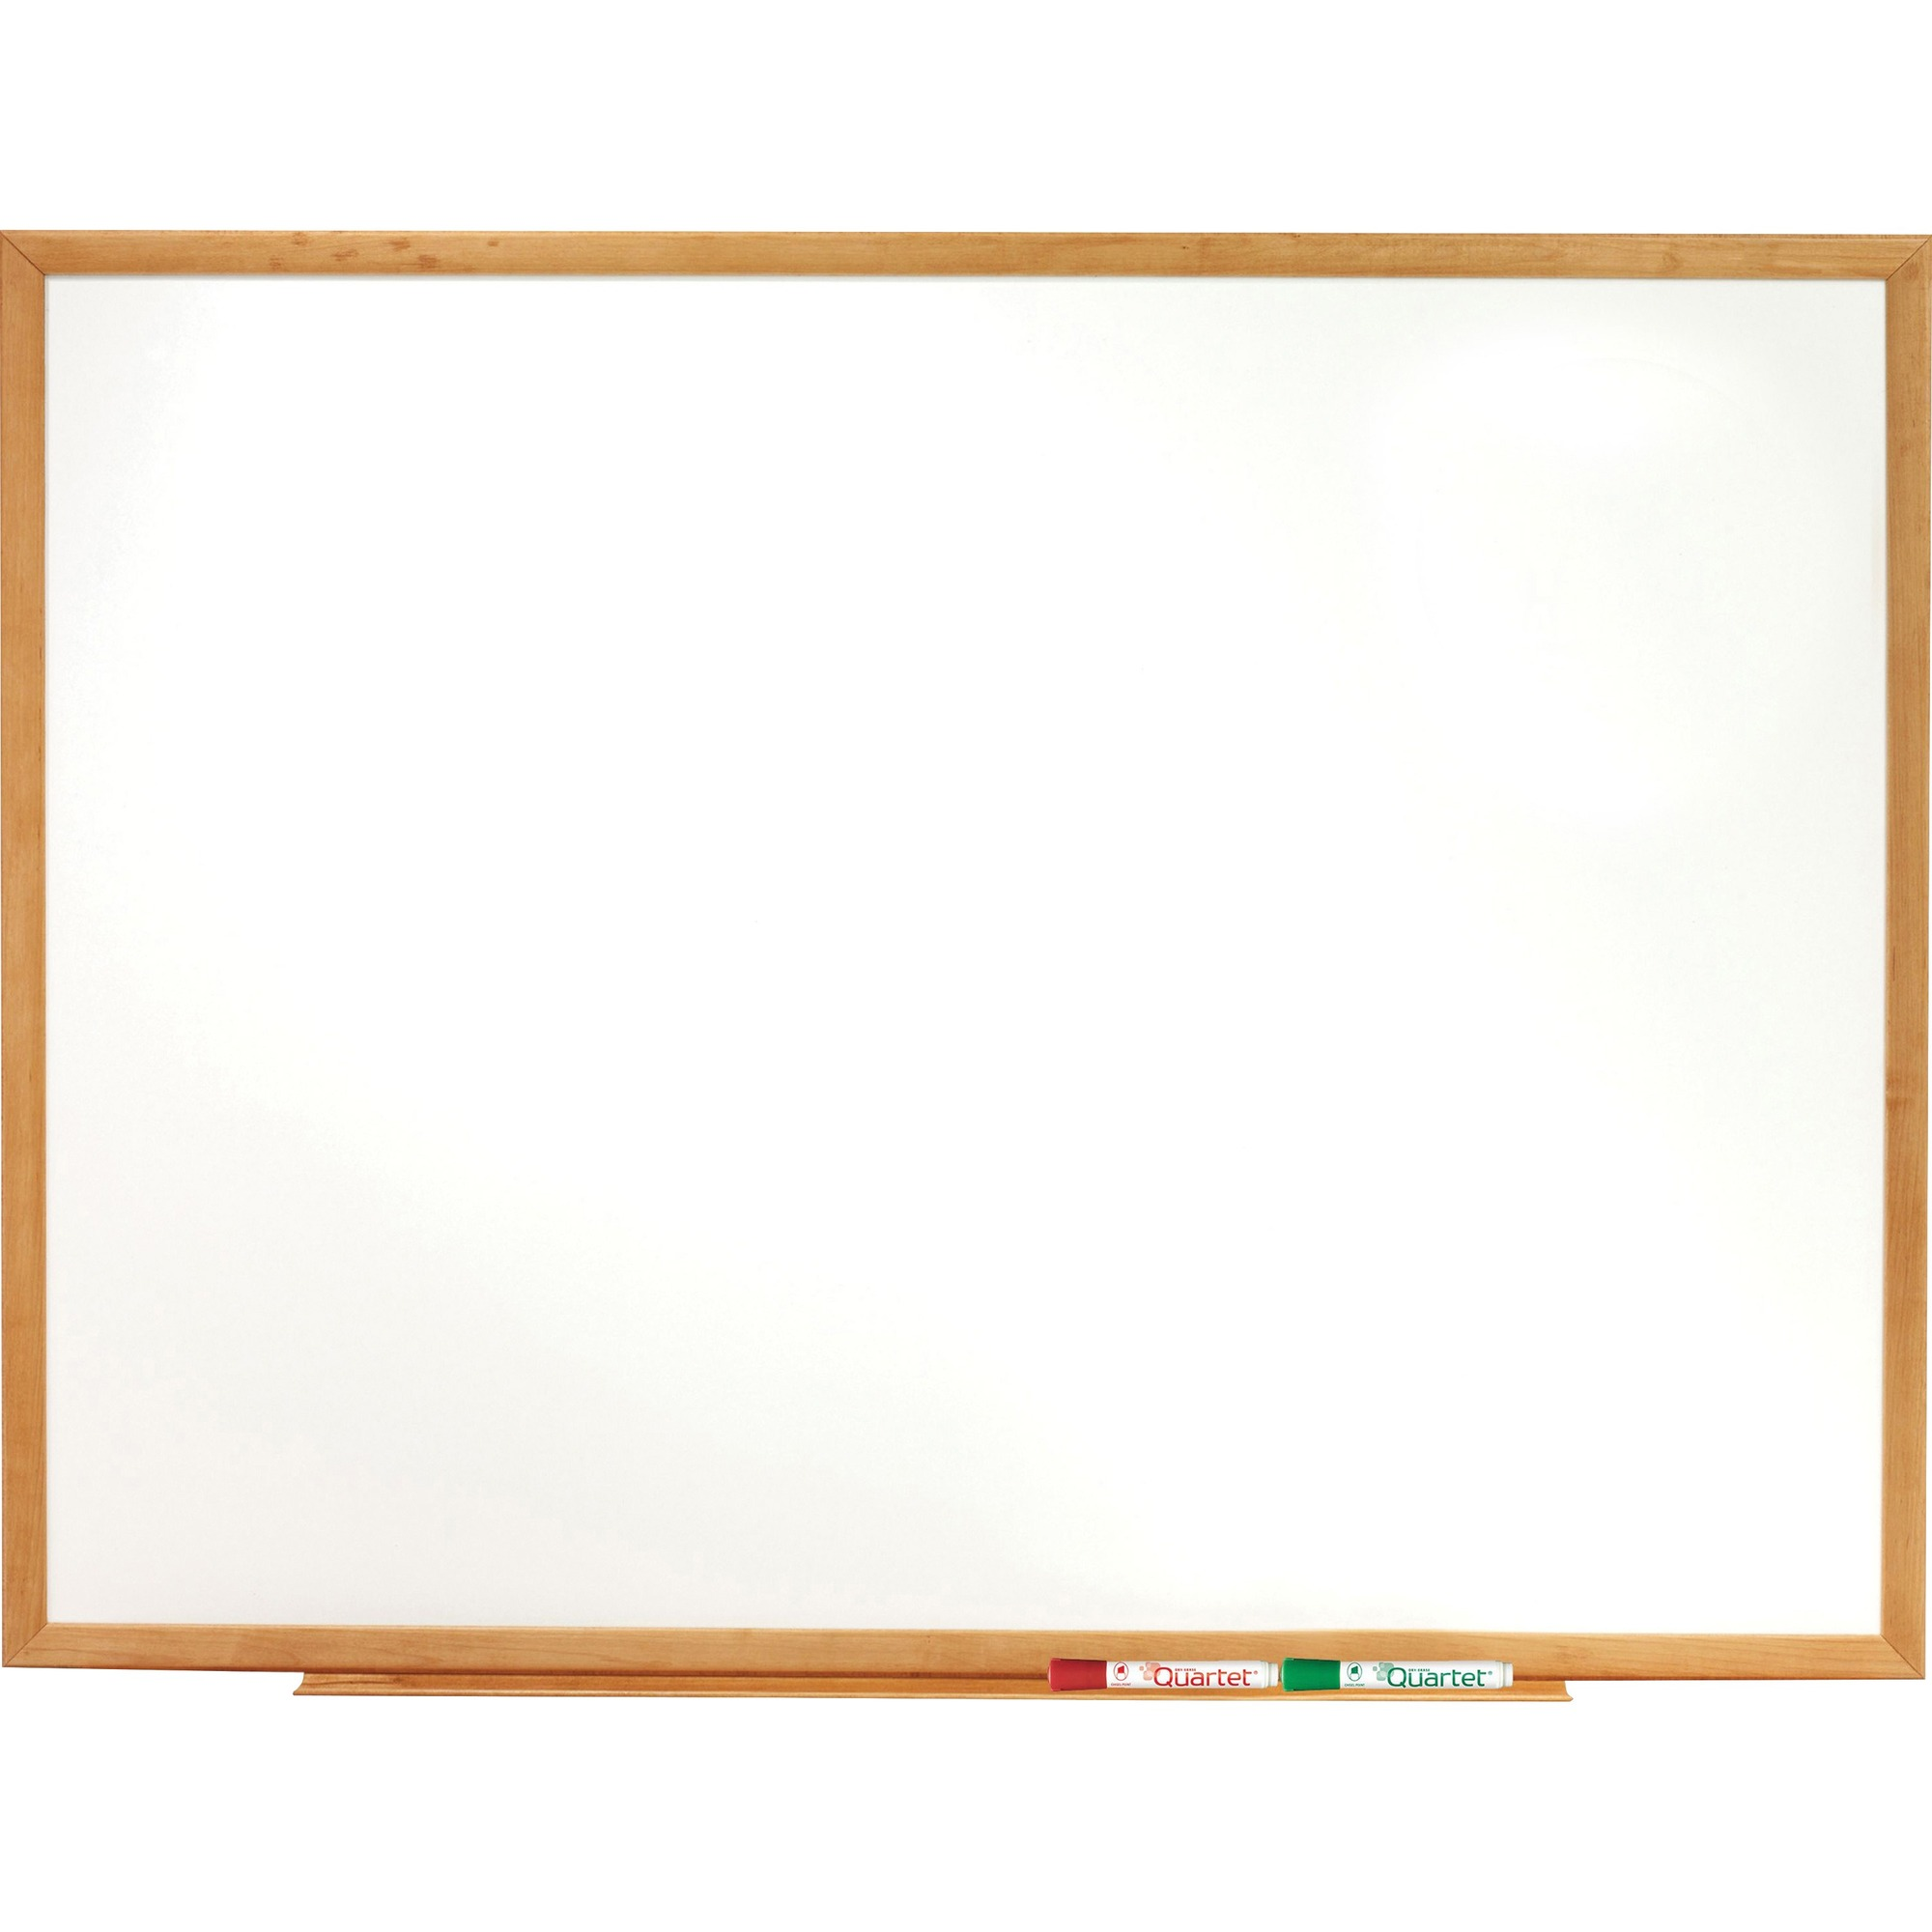 Acco Brands Corporation Quartet® Classic Whiteboard - 48 (4 Ft) Width X 36 (3 Ft) Height - White Melamine Surface - Oak Frame - Horizontal/vertical - 1 Each